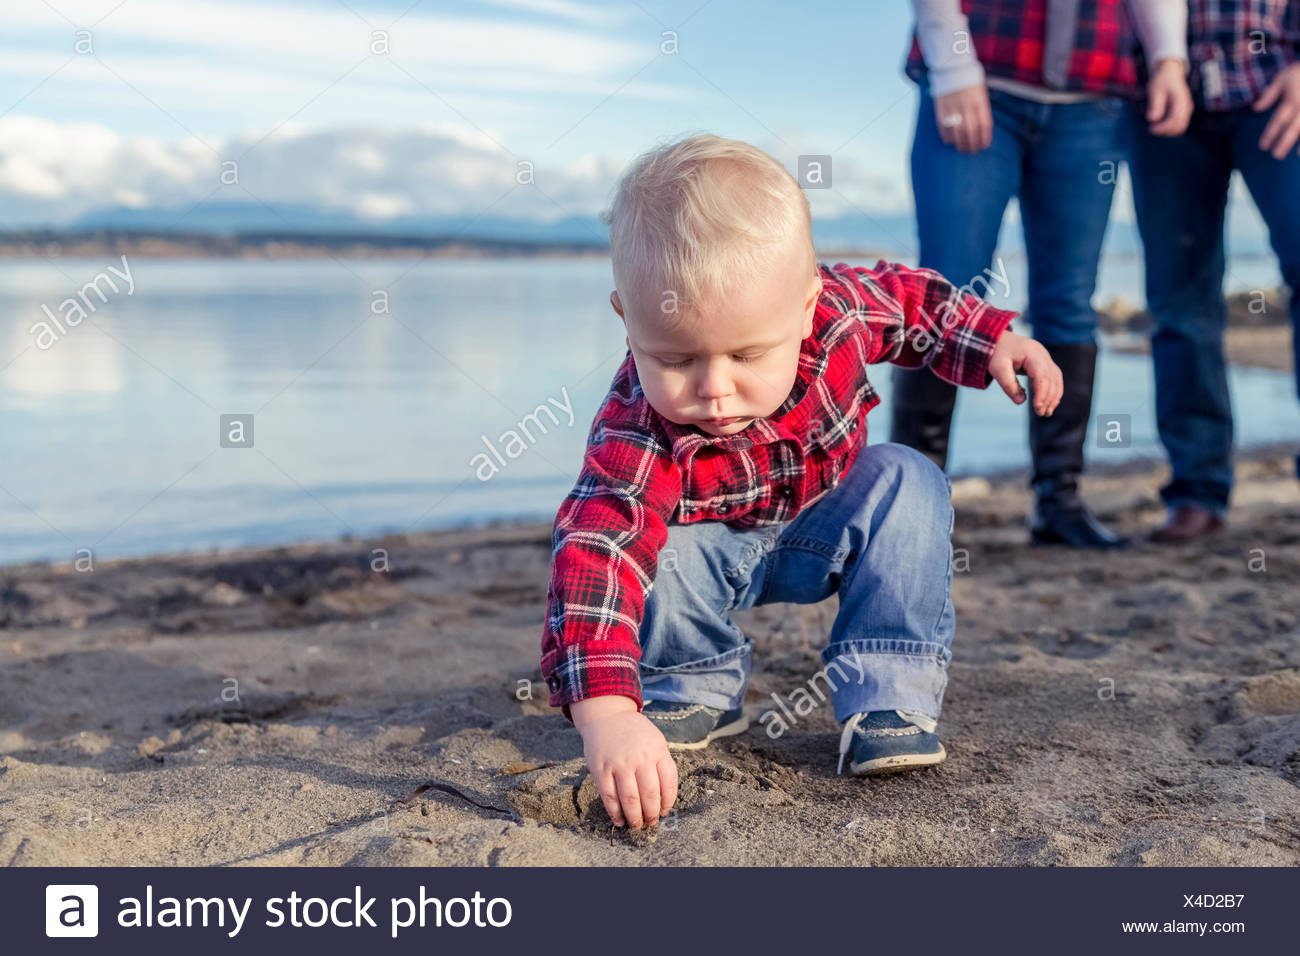 A young toddler gets his hands dirty playing with sand on the beach while his parents look on from the background; Surrey, British Columbia, Canada - Stock Image